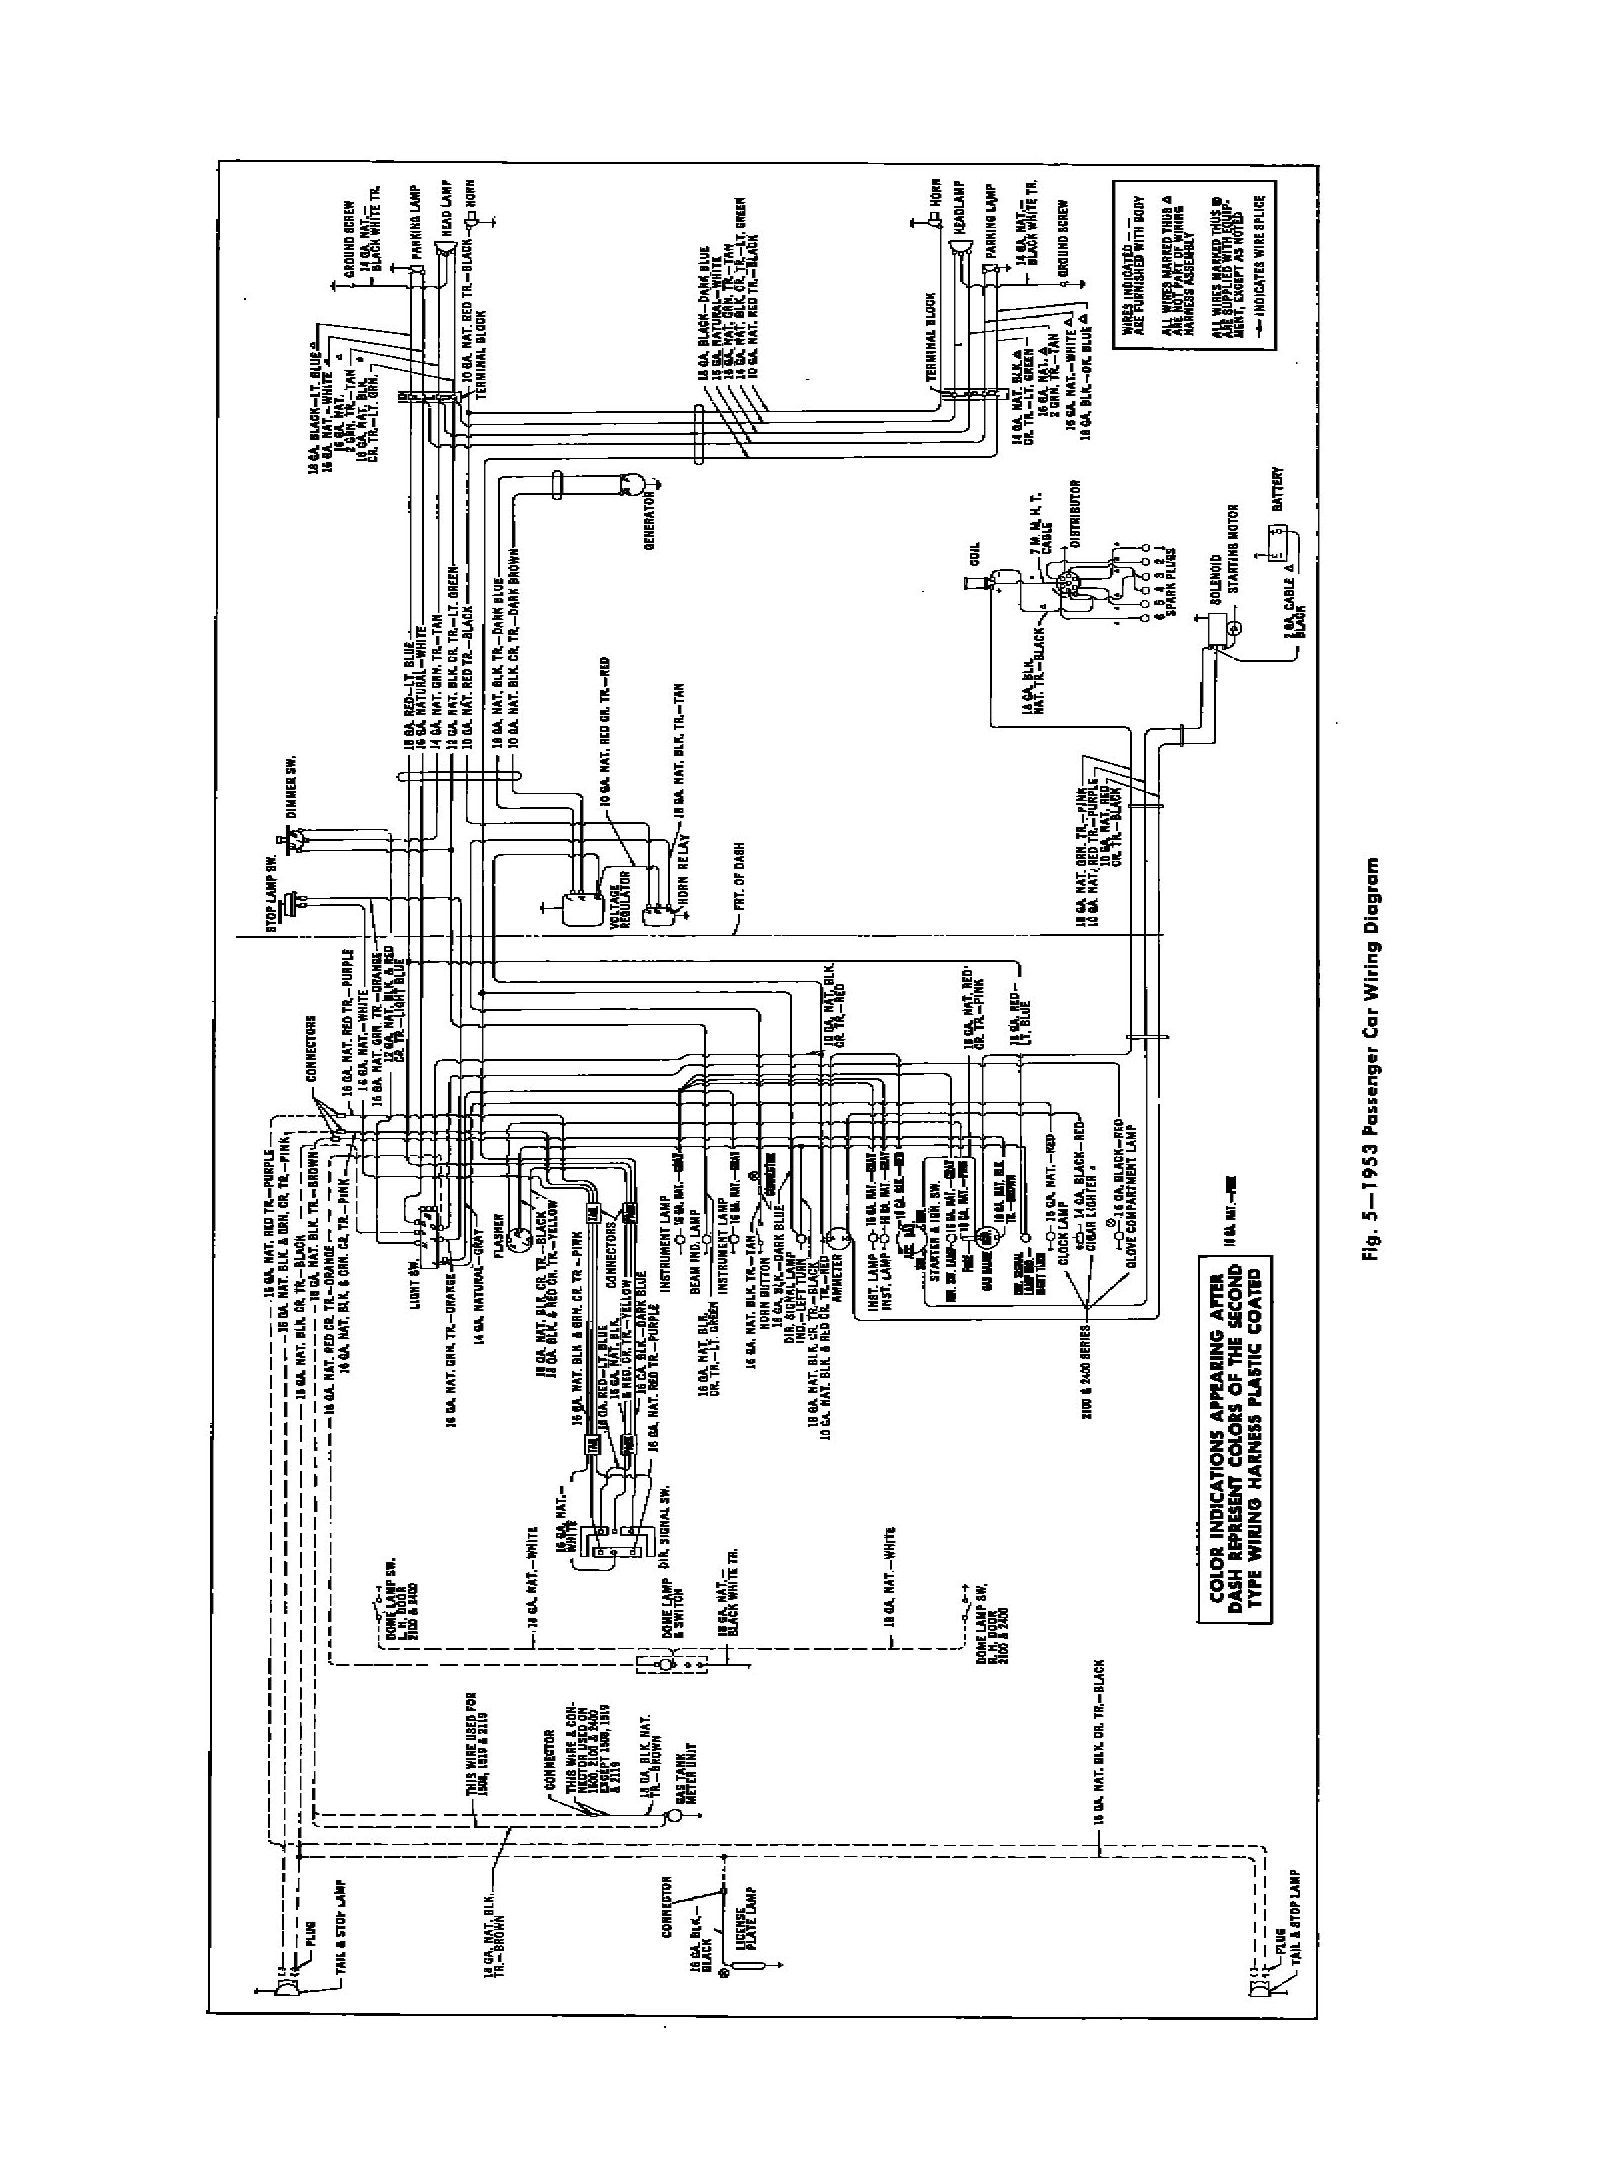 1953 chevy truck wiring diagram 1960 chevy wiring diagram